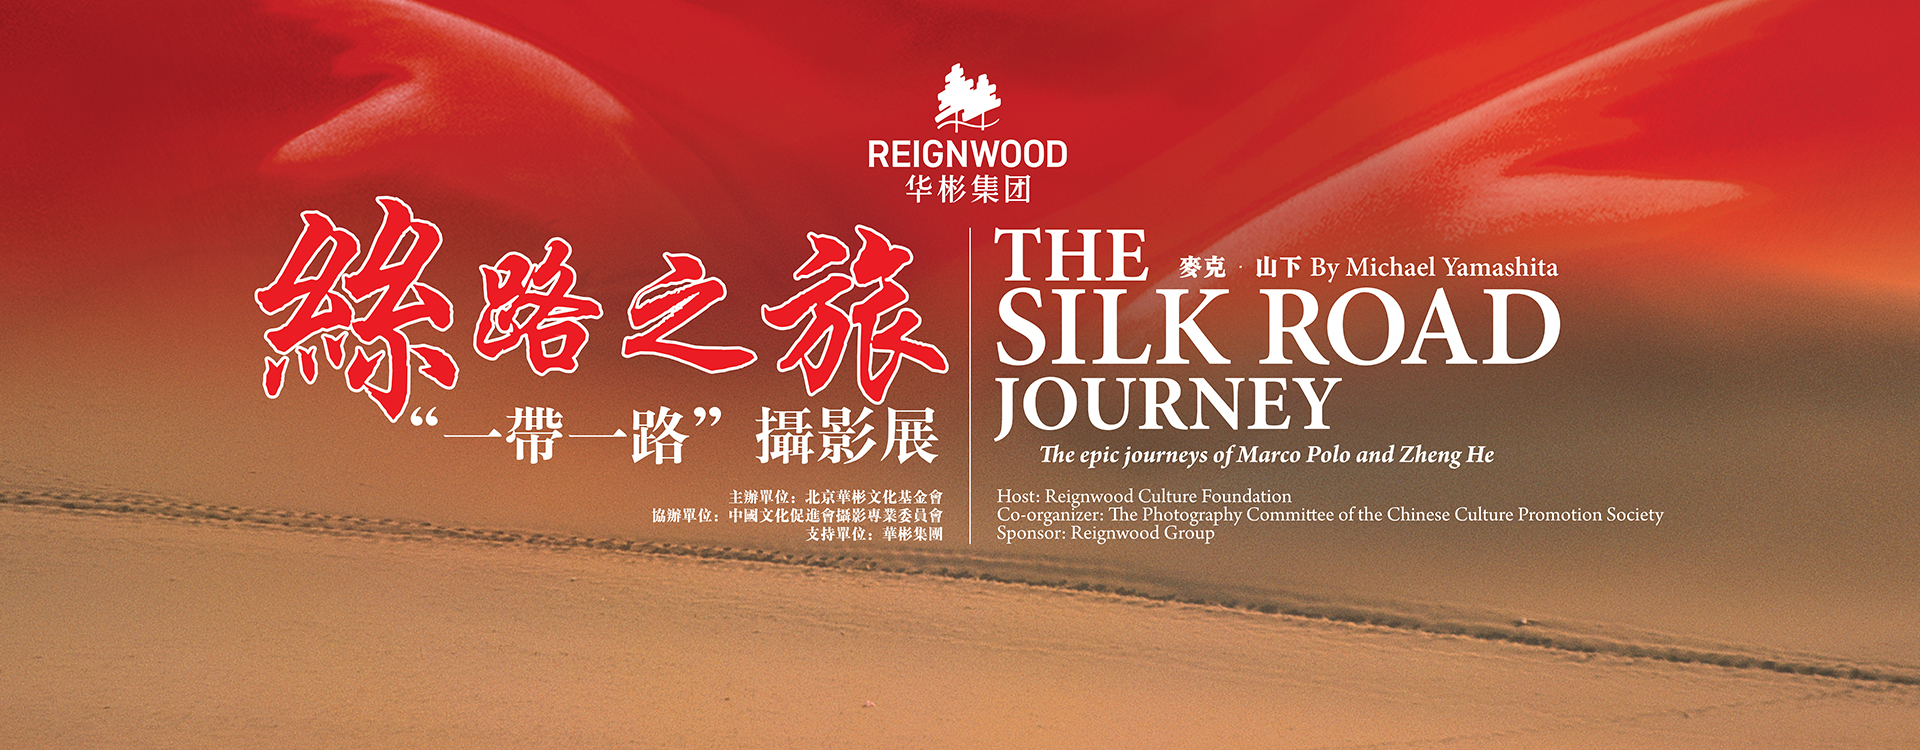 Silk Road Journey